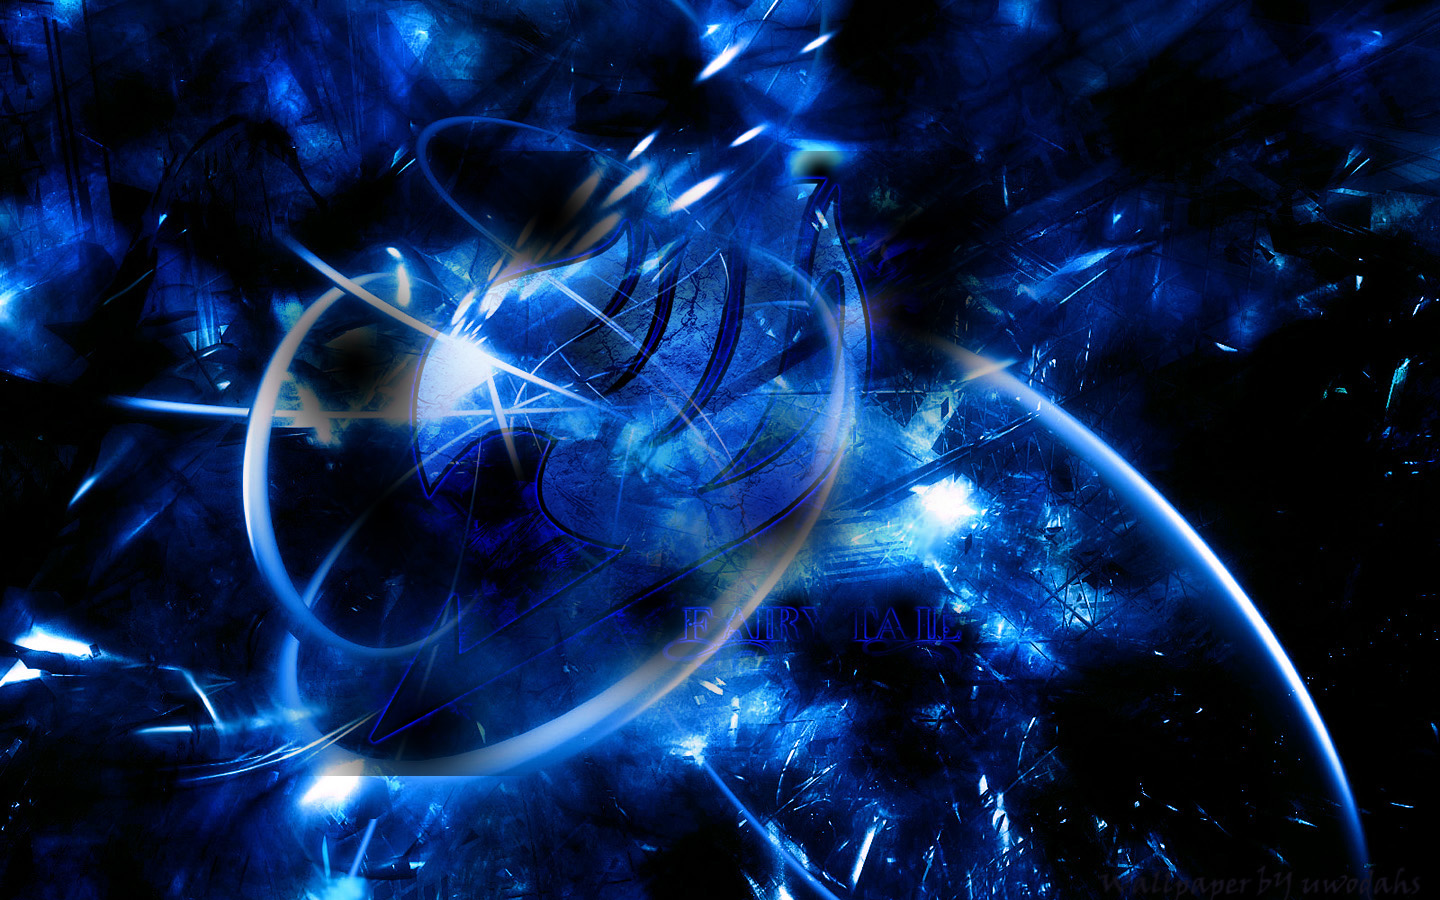 Blue Fairy Tail hd wallpaper in Abstract 1440x900